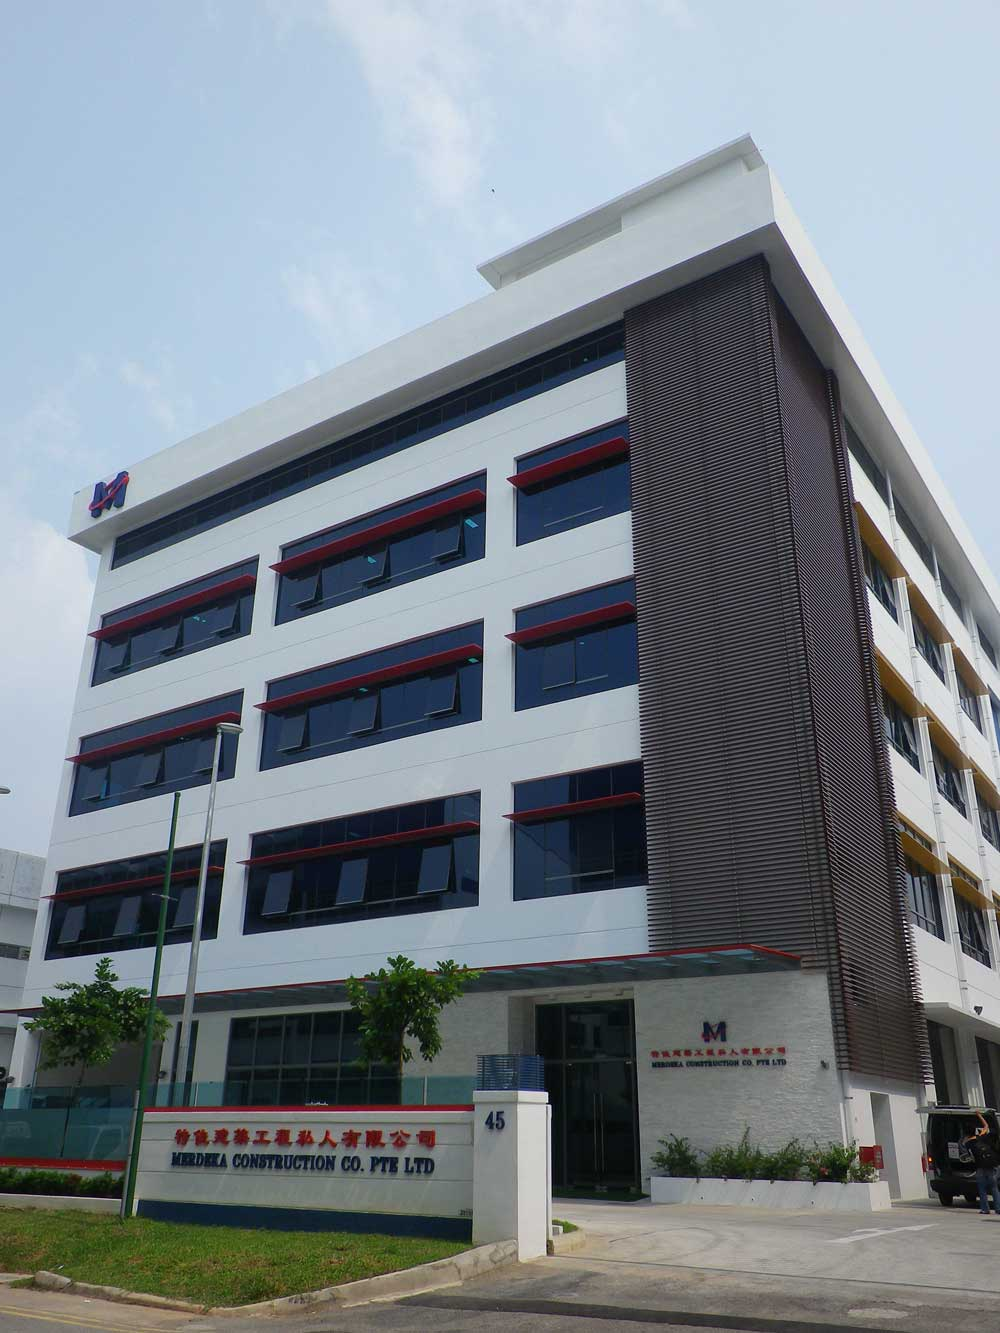 Soon Heng Glass L Trusted Glass Supplier In Singapore